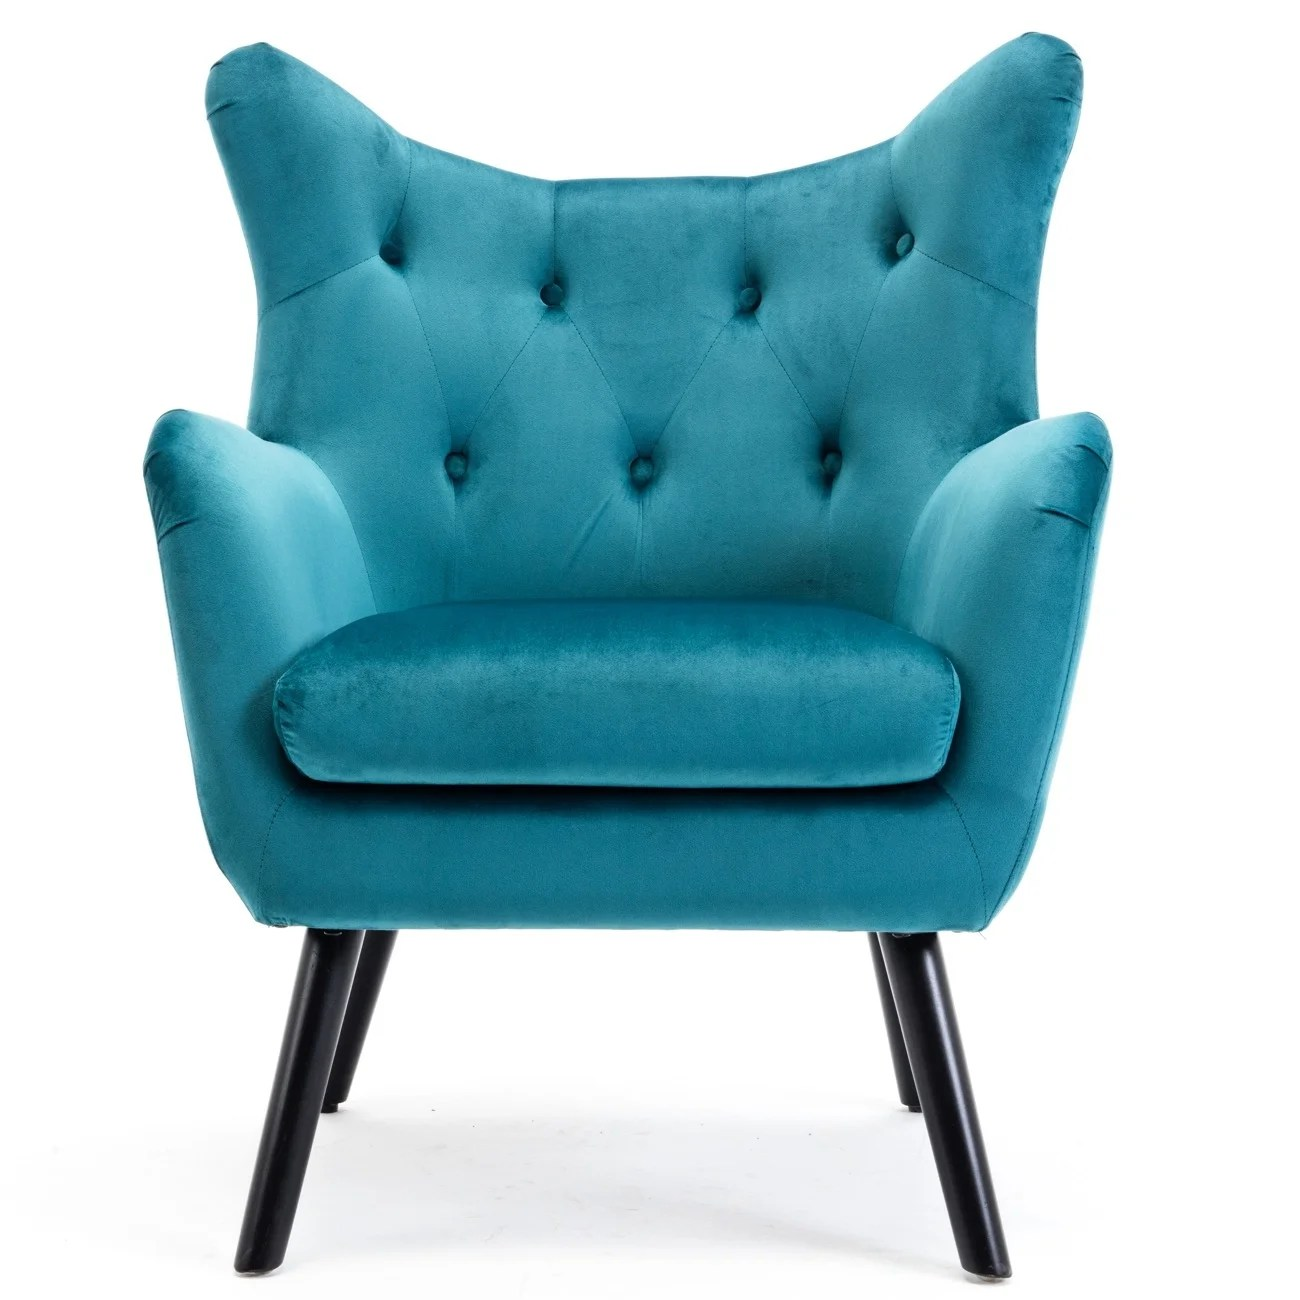 Teal Wingback Chair Belleze Accent Wing Back Chair Button Tufted Living Room Seat With Wood Leg Teal